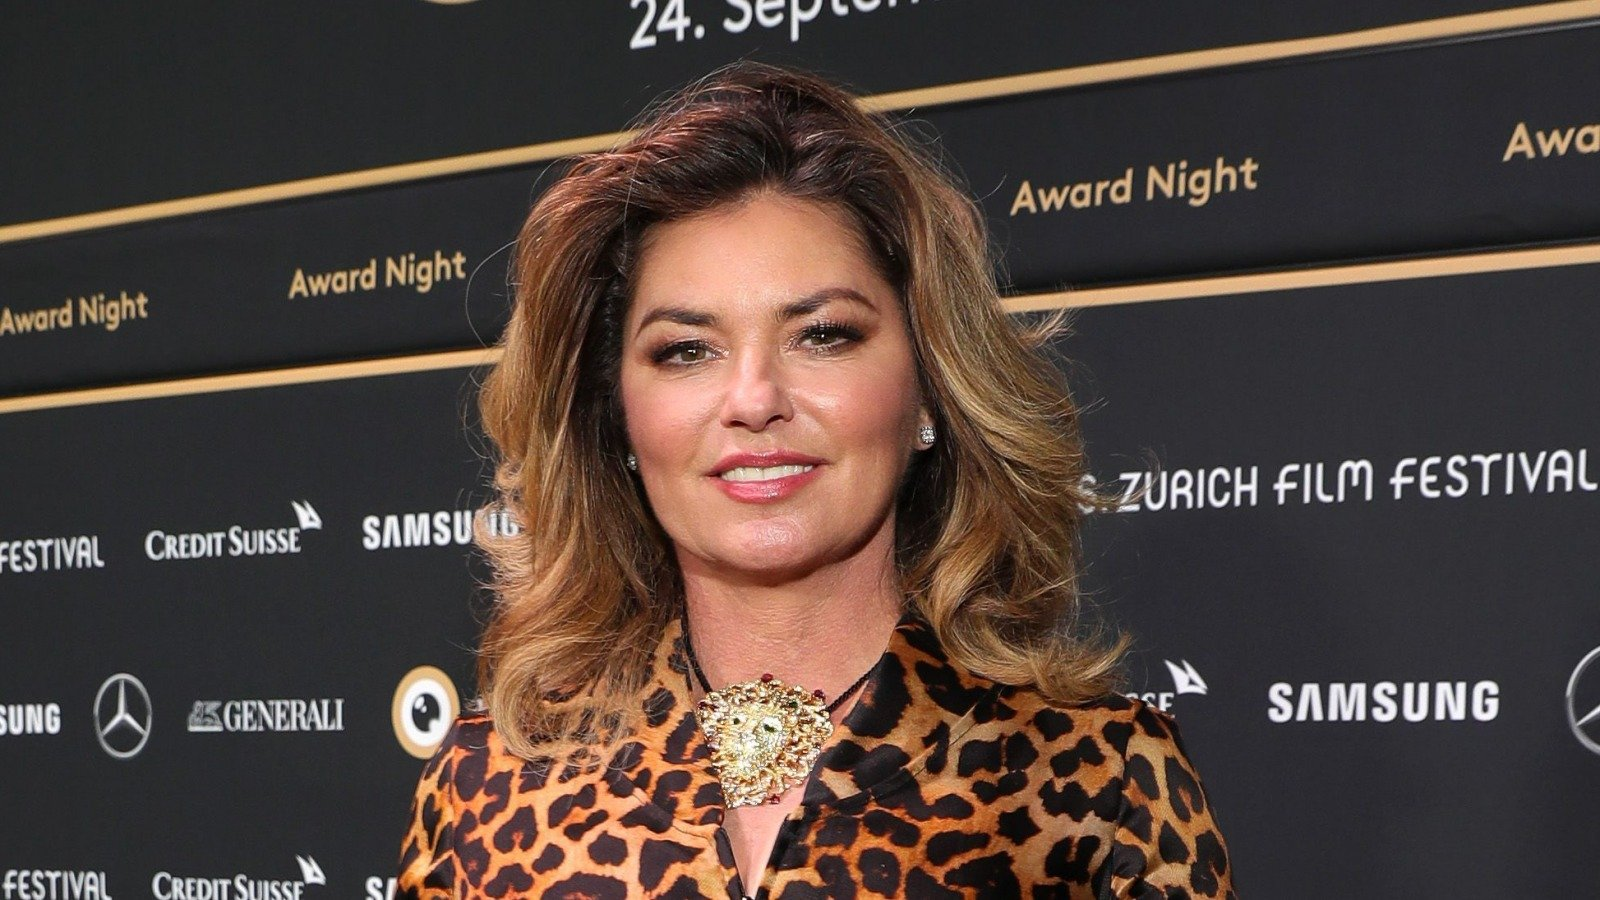 The Truth About The Shania Twain Cheating Scandal